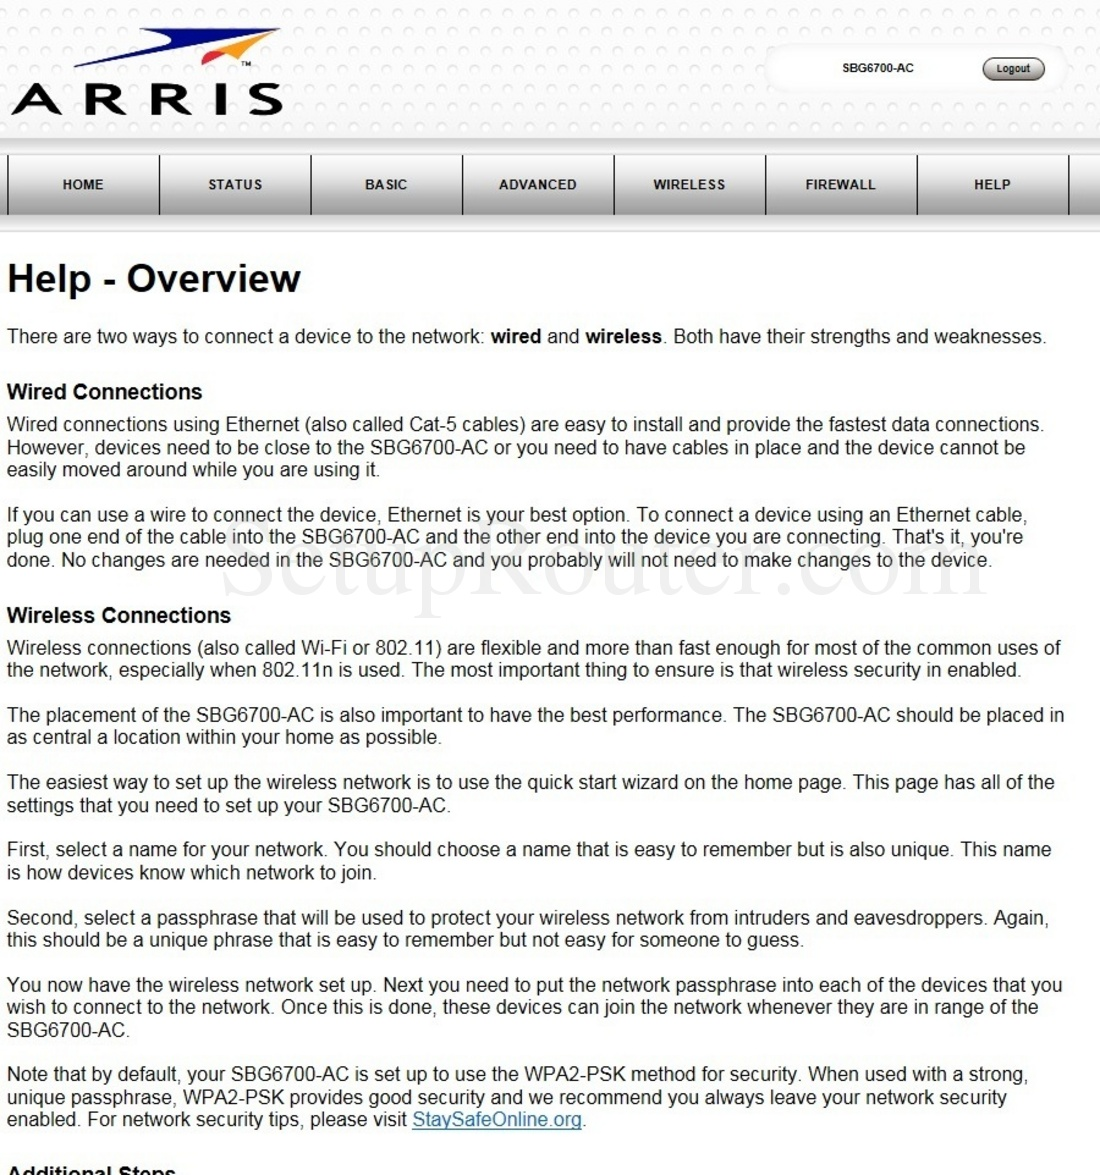 Arris Sbg6700 Ac Screenshot Helpoverview Ethernet Wiring For Your Home Keywords On The